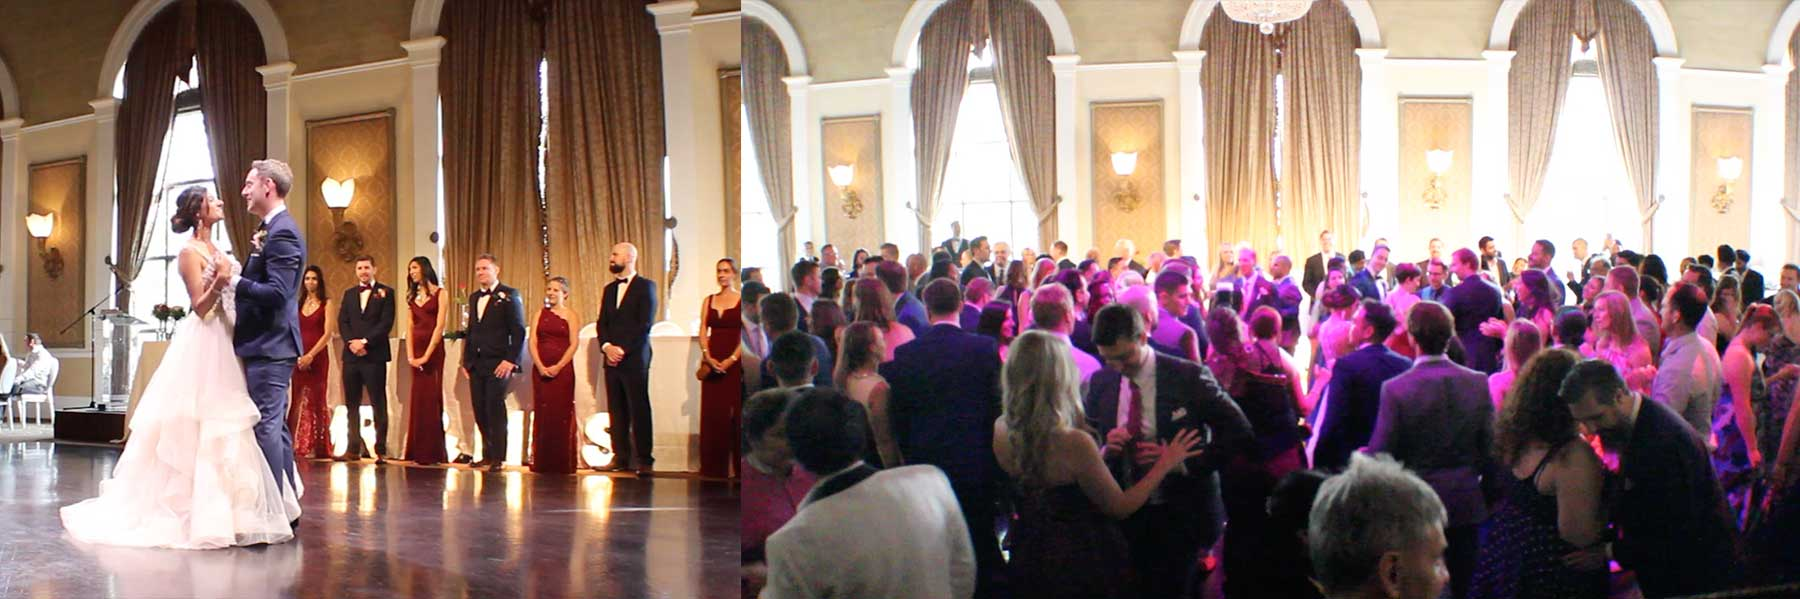 Wedding-DJ-Toronto-Liberty-Grand-Centenial-Room